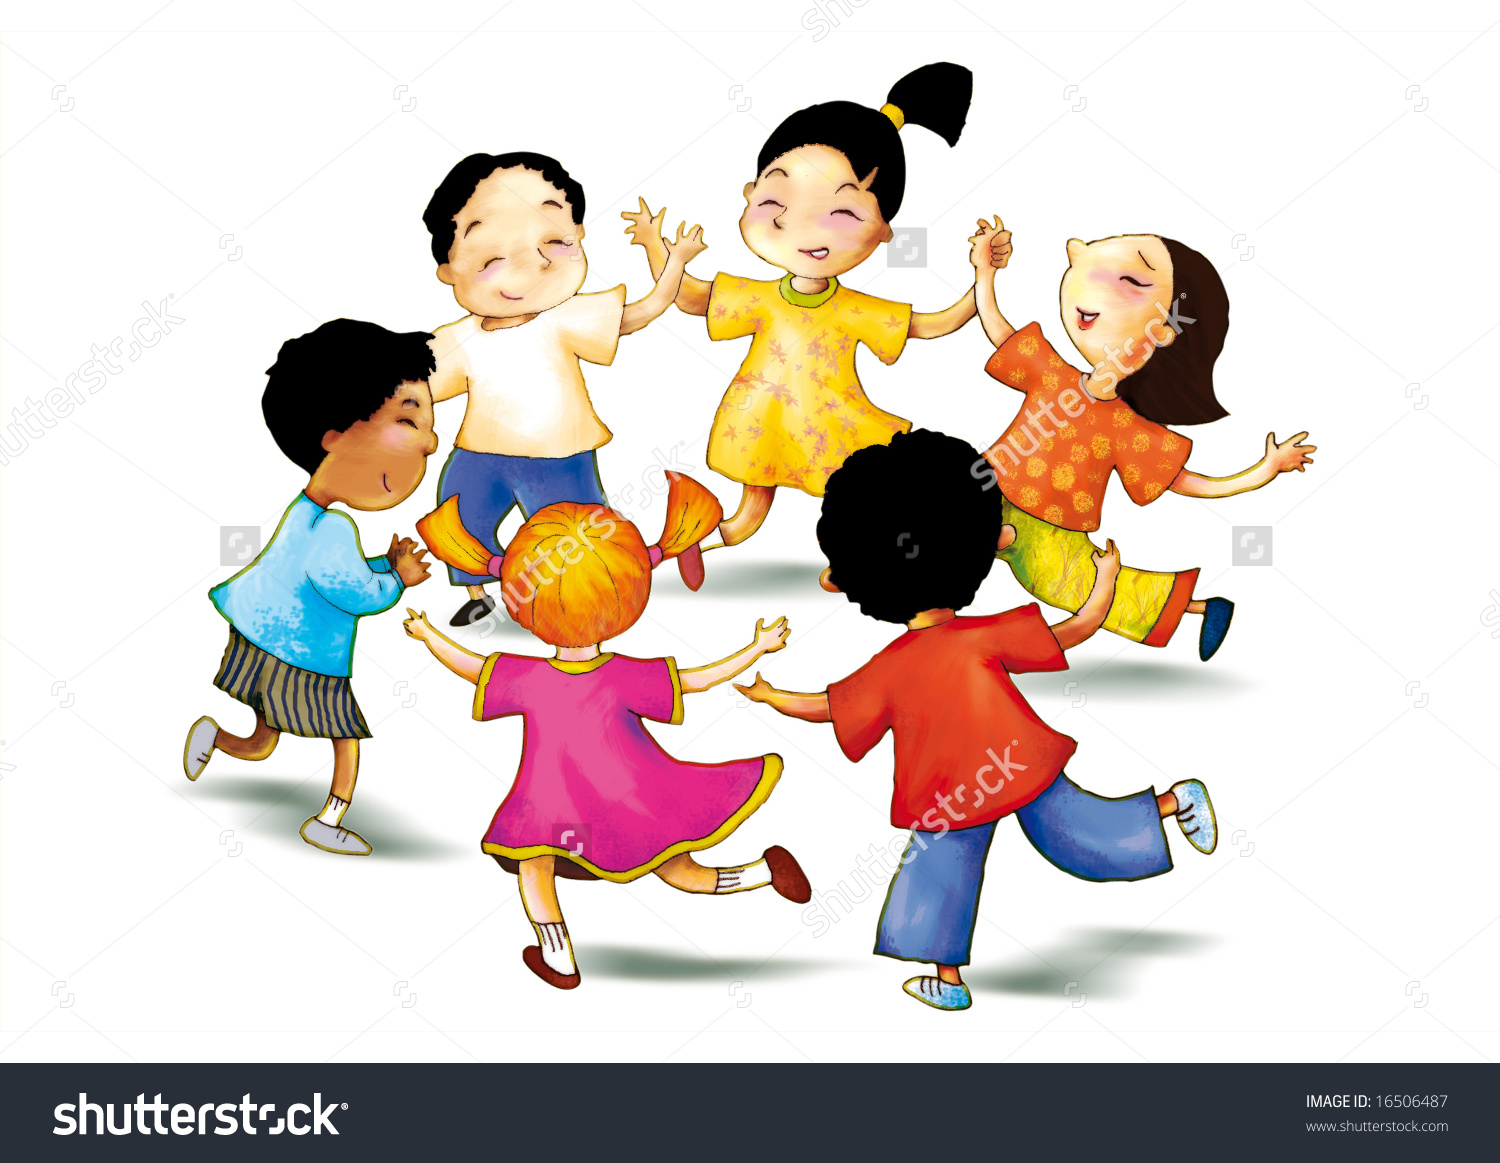 Concept Illustration Children Play Together Show Stock.